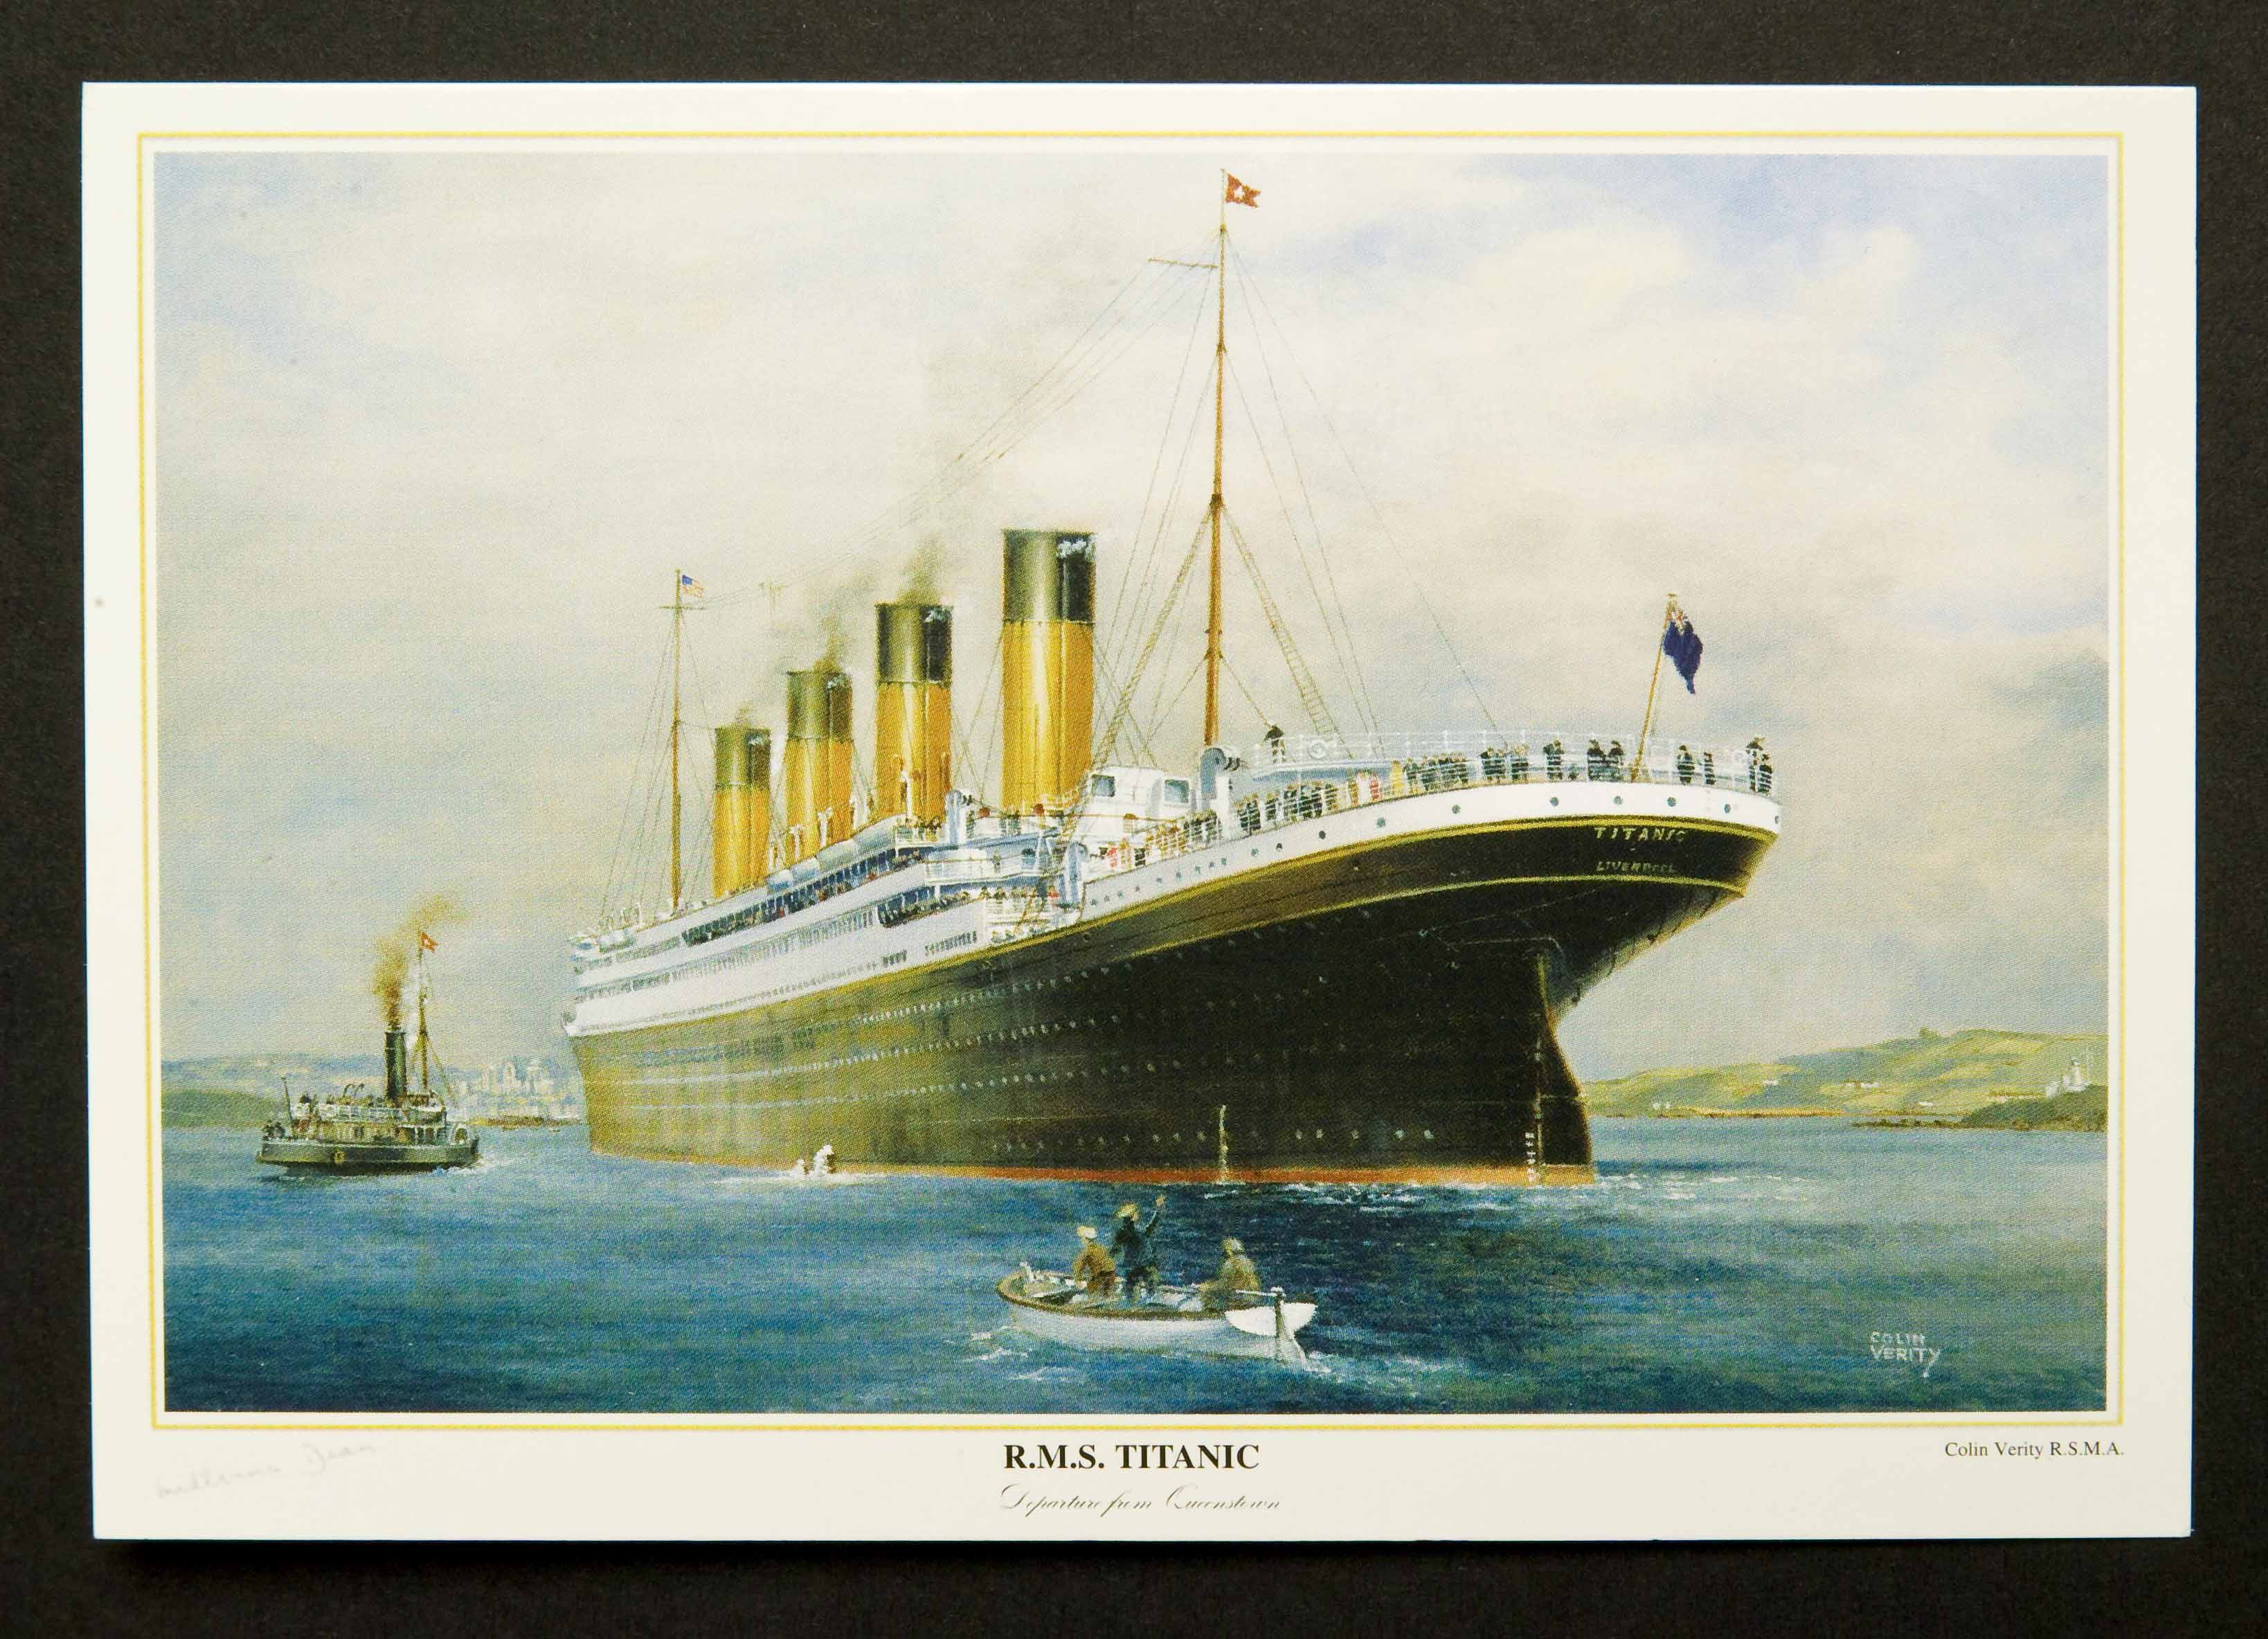 """ R.M.S. Titanic"" Postcards (6) by Colin Verity"